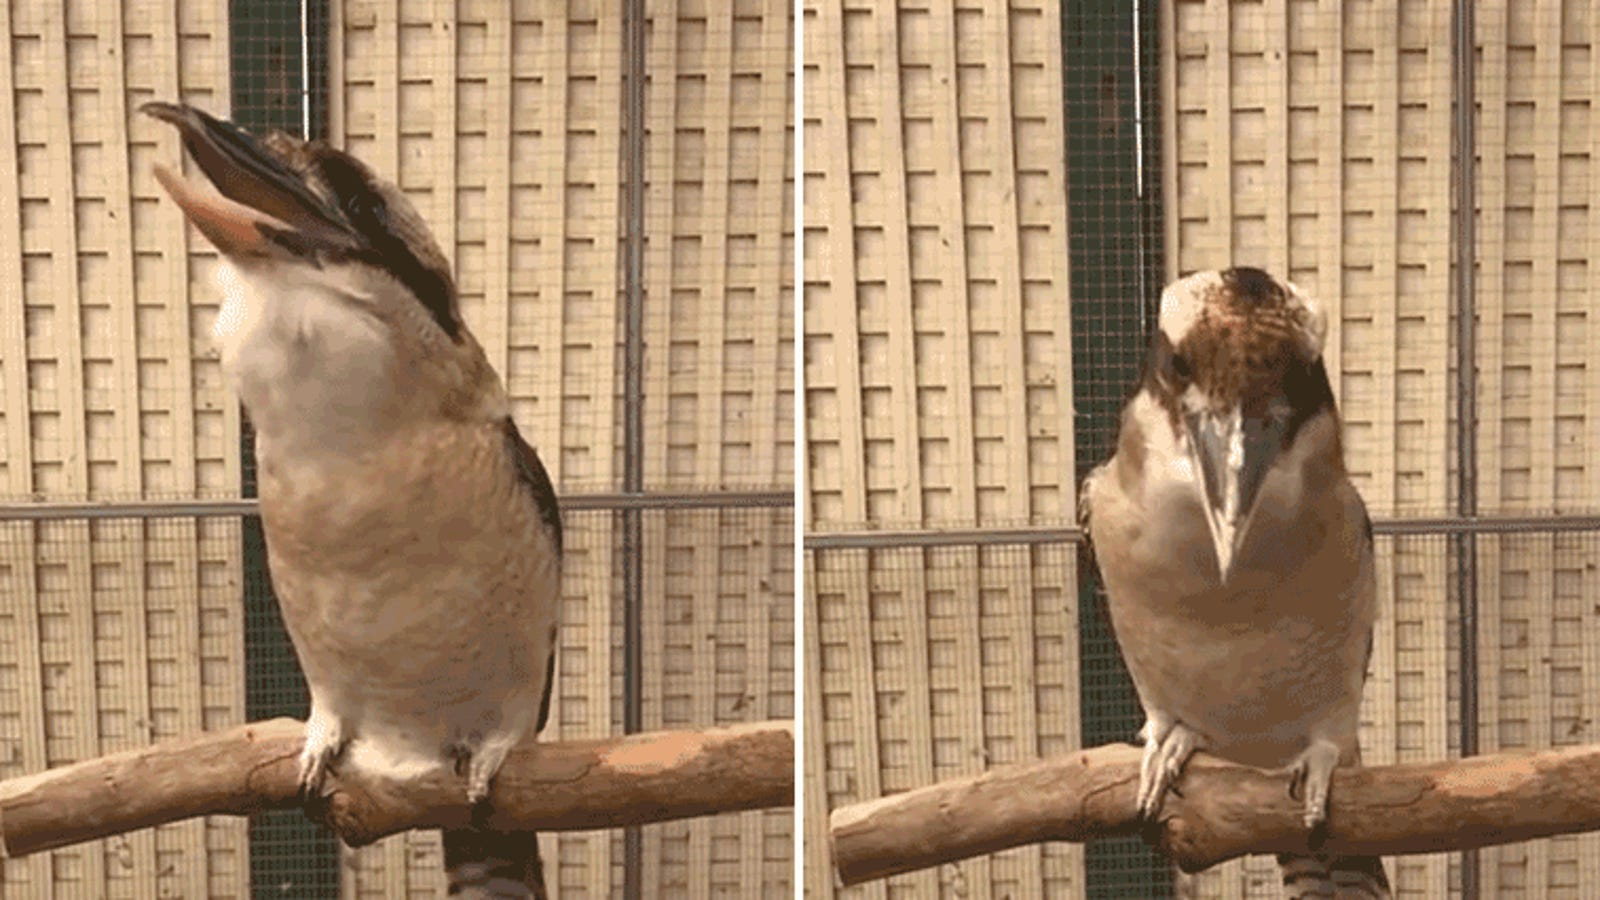 A Kookaburra Bird Laughing in Slow Motion Is Your New Nightmare Fuel